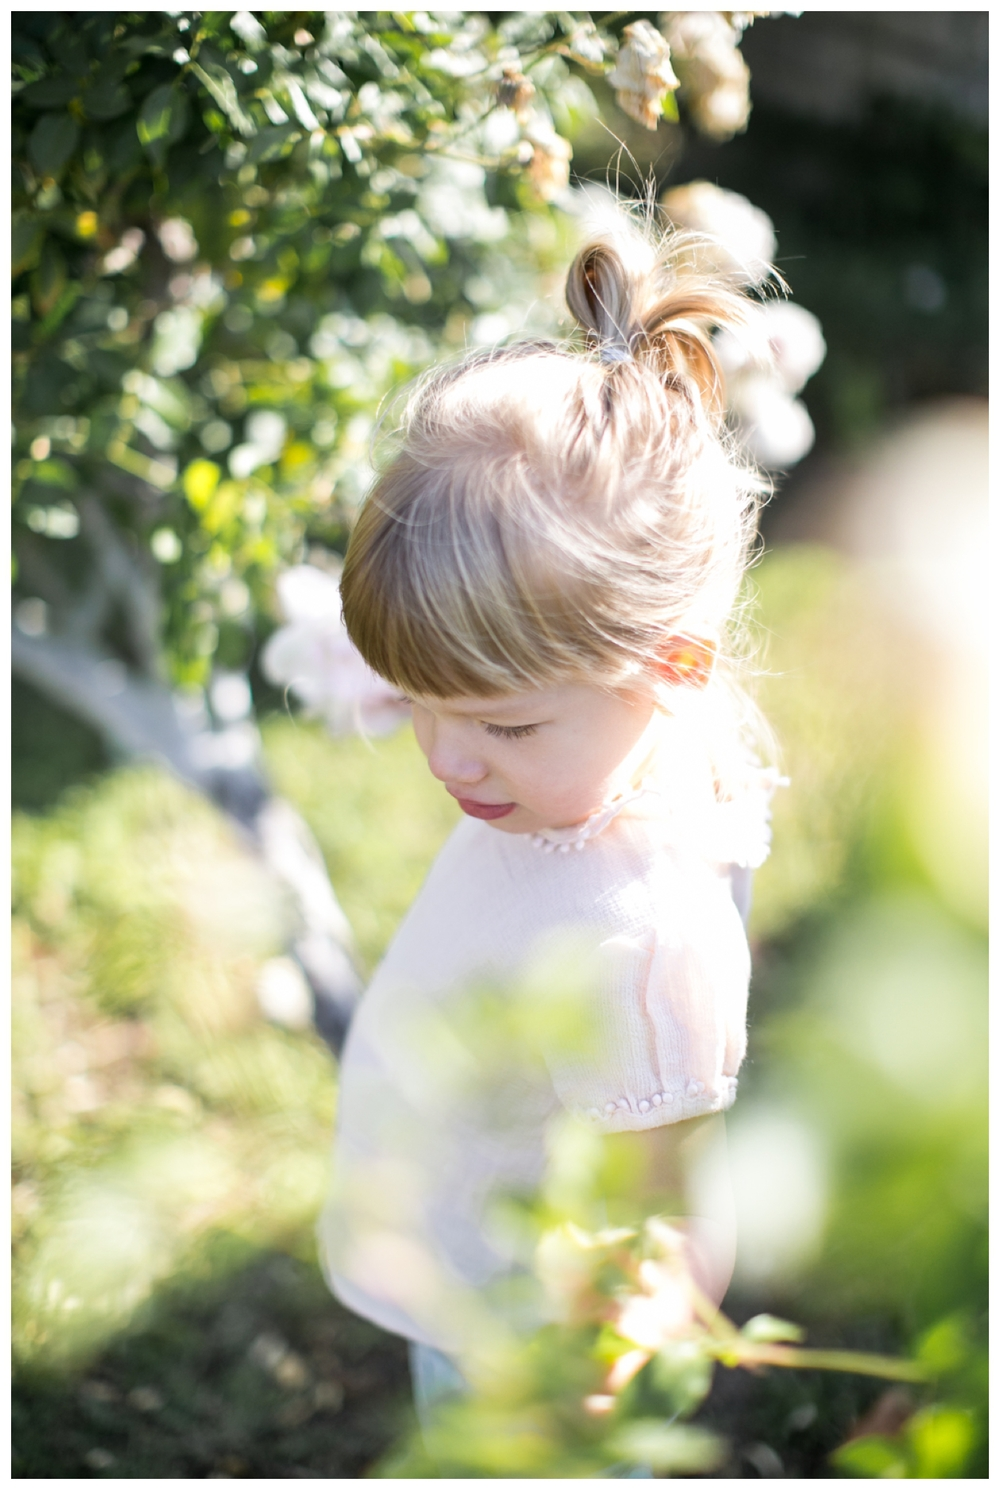 louis louise for mini style blog | lily glass